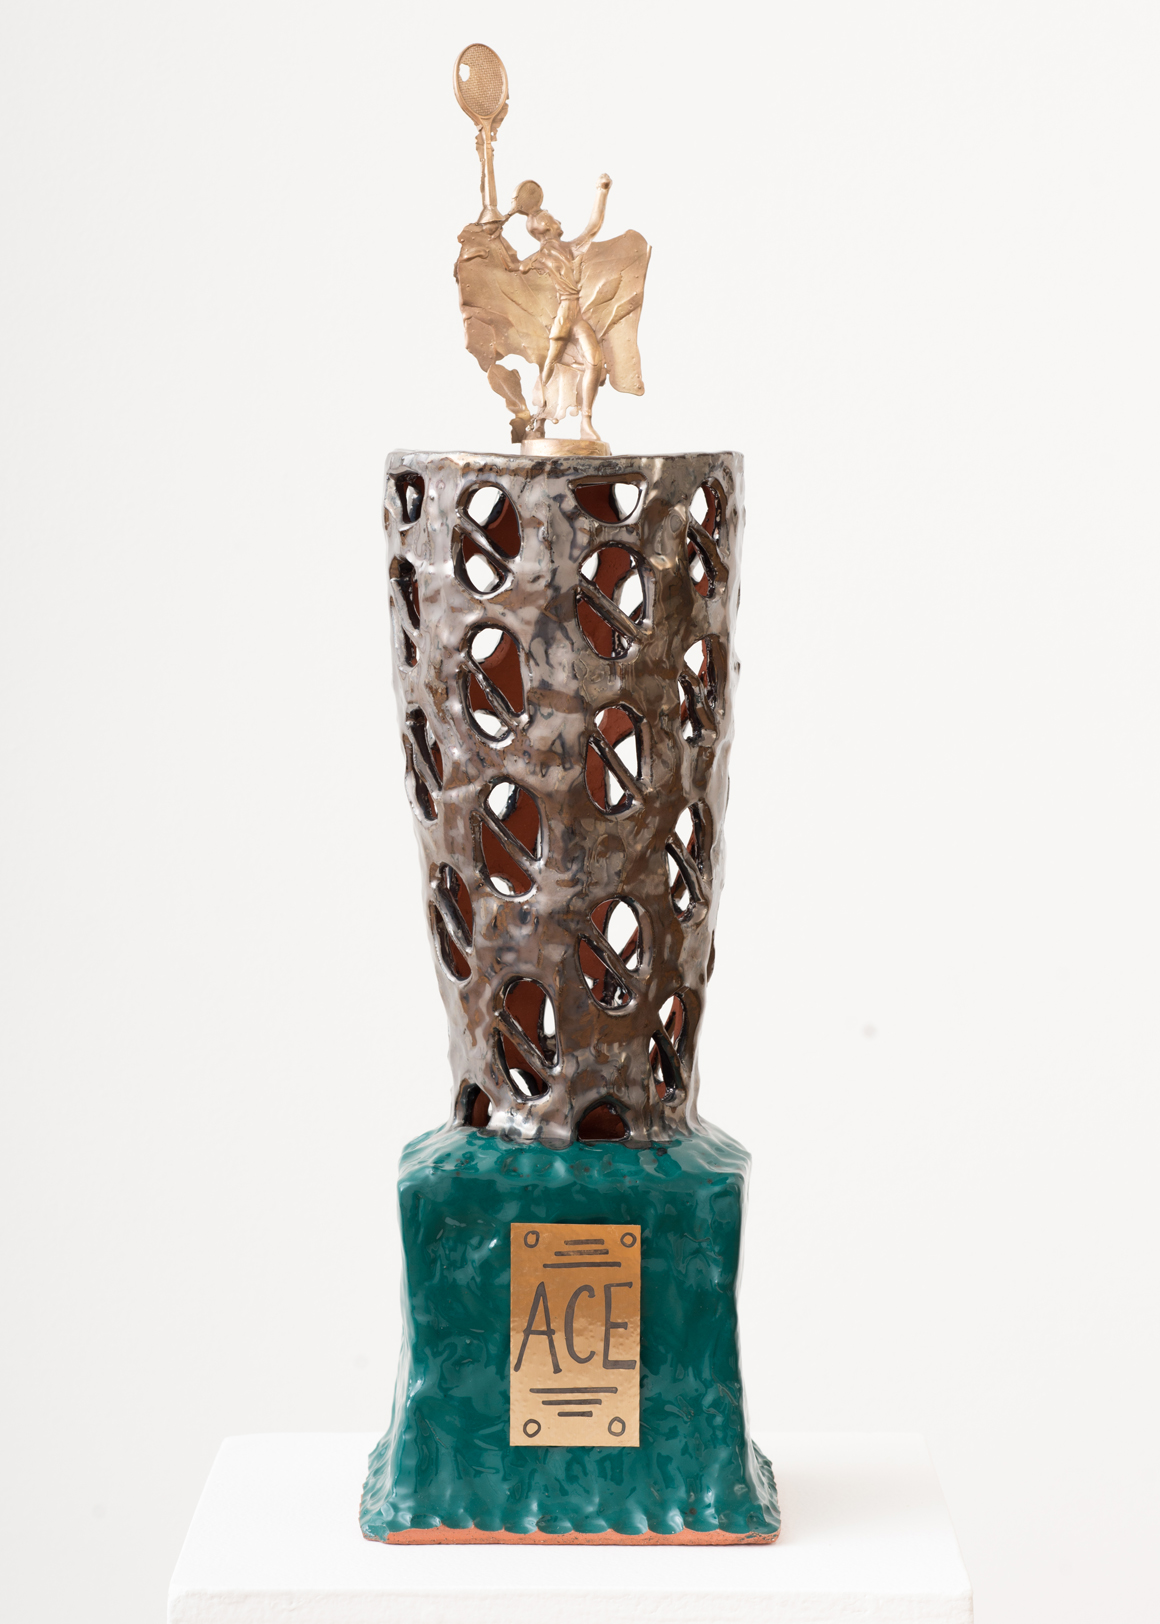 "<p><span class=""name"">Stephanie Kantor</span><br><em>Trophy (Ace)</em><span class='media'>Earthenware, glaze, bronze, brass</span>24 x 6.5 x 6.5 in (61 x 16.5 x 16.5 cm)<br>2018<br><a class='inquire' href='mailto:info@gildargallery.com?subject=Artwork Inquiry SKAN0001&body=I am interested in finding out more about Trophy (Ace) by Stephanie Kantor'>Inquire</a></p>"